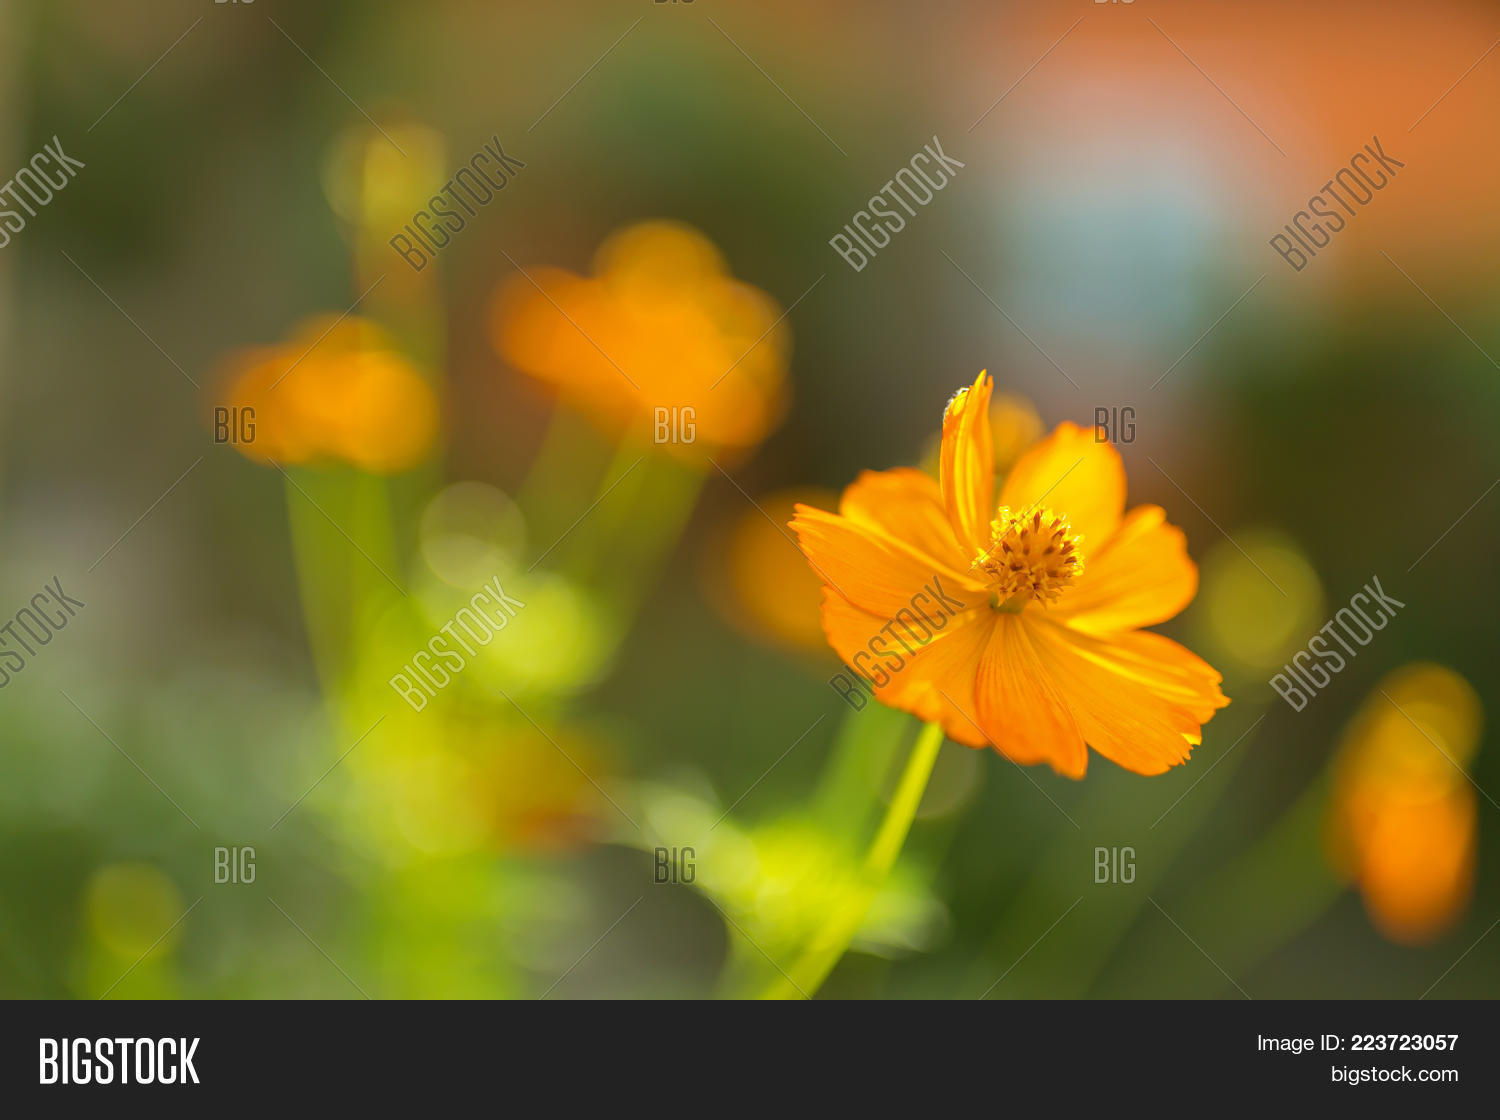 Yellow cosmos flower known sulfur image photo bigstock yellow cosmos flower known as sulfur cosmos with blurred green garden background cosmos sulphureus mightylinksfo